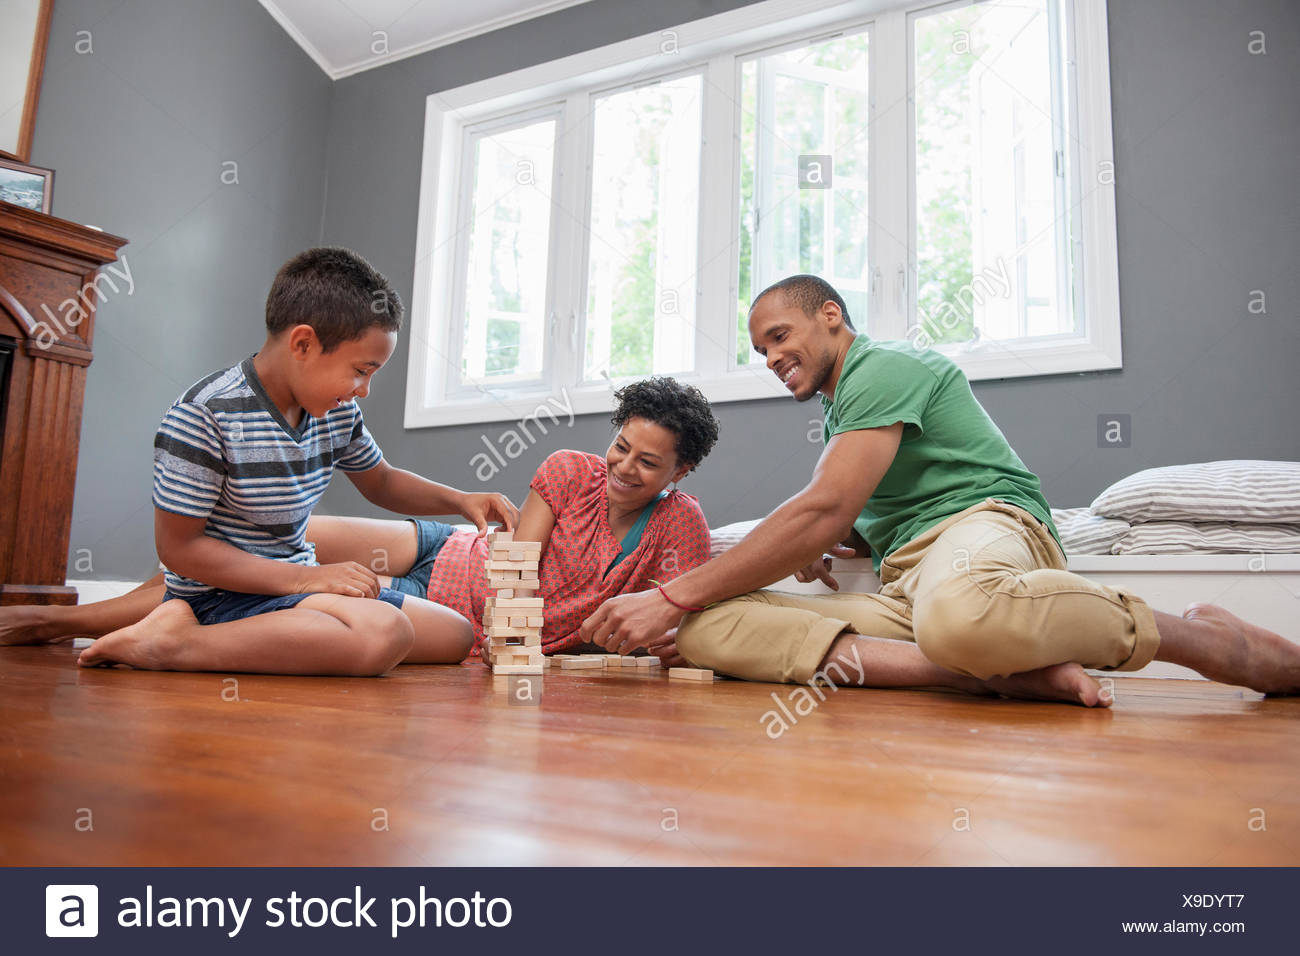 Family on the floor playing a game at home. - Stock Image